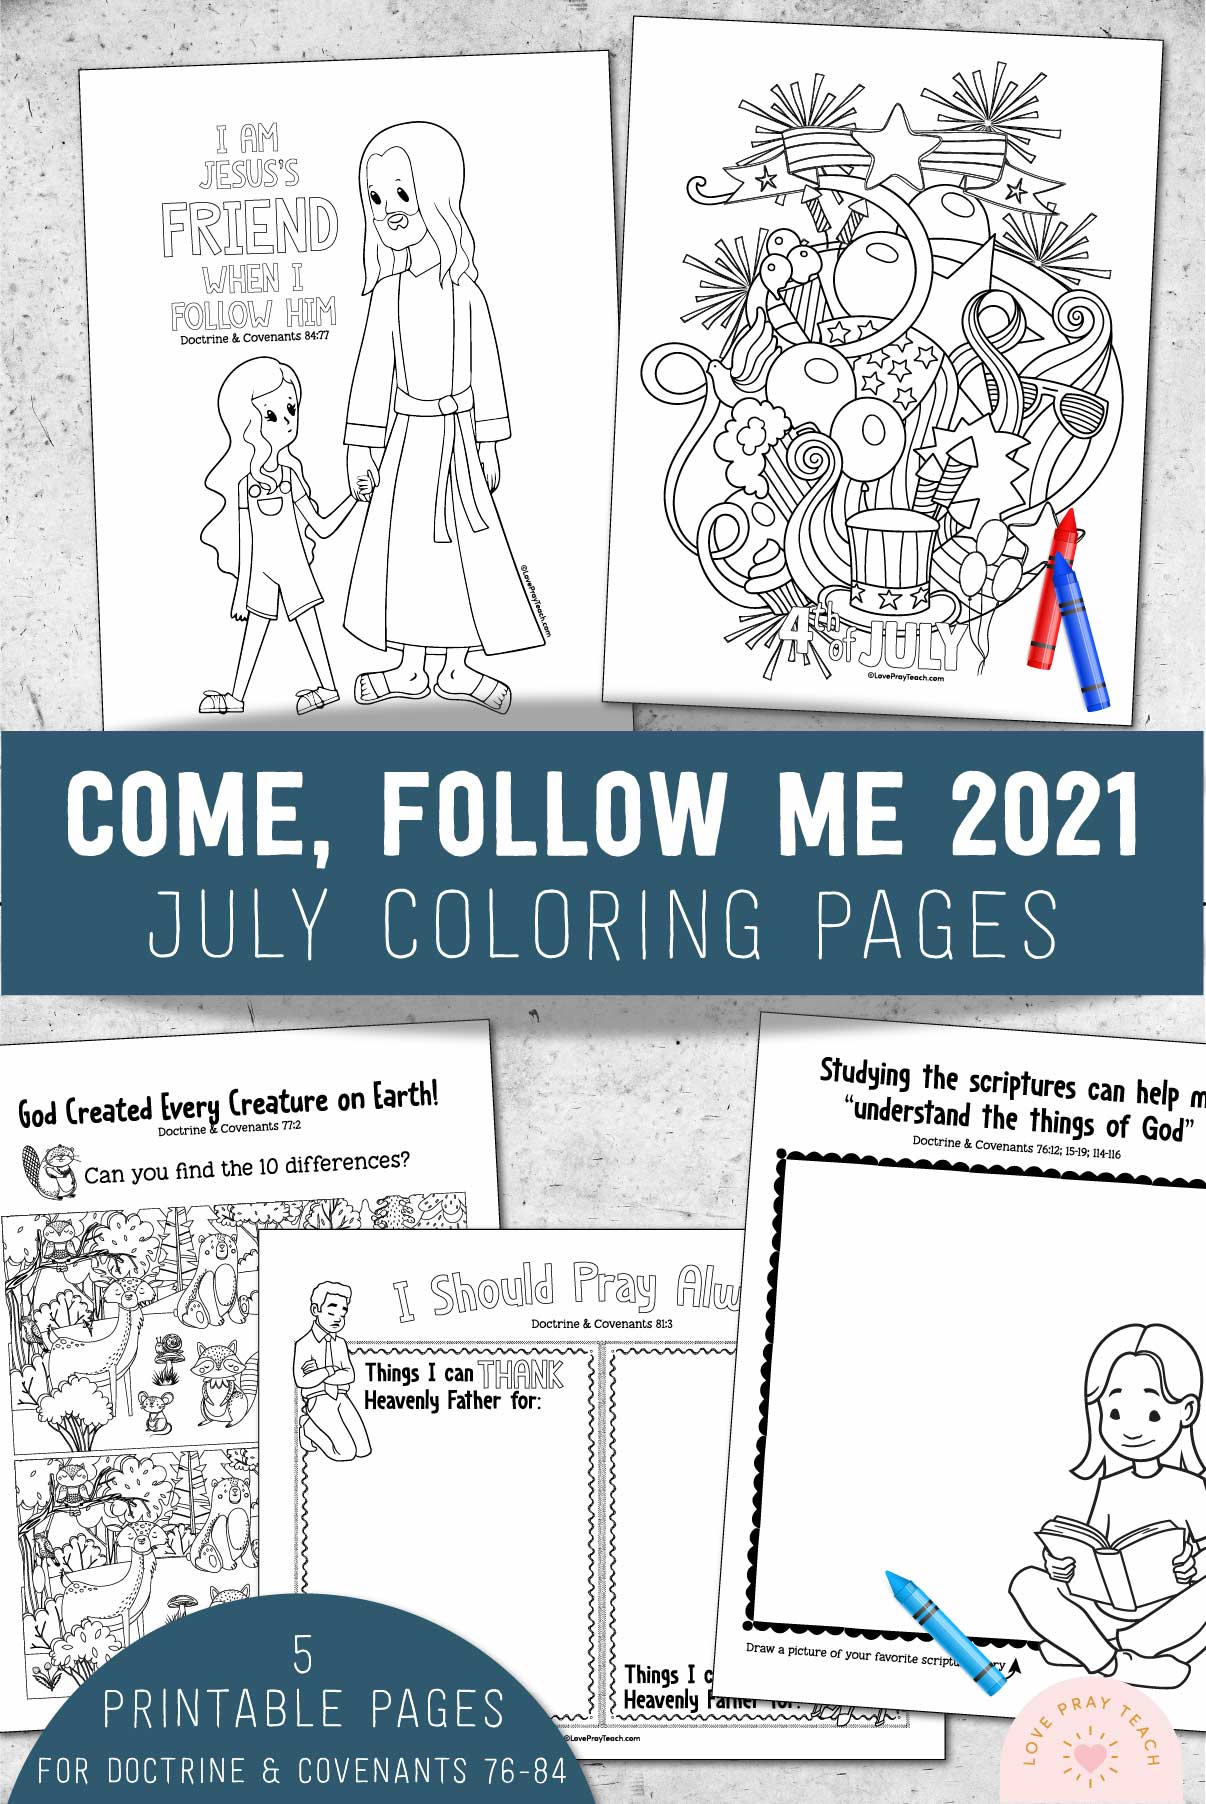 July 2021 Come, Follow Me Coloring Pages for Doctrine & Covenants www.LovePrayTeach.com